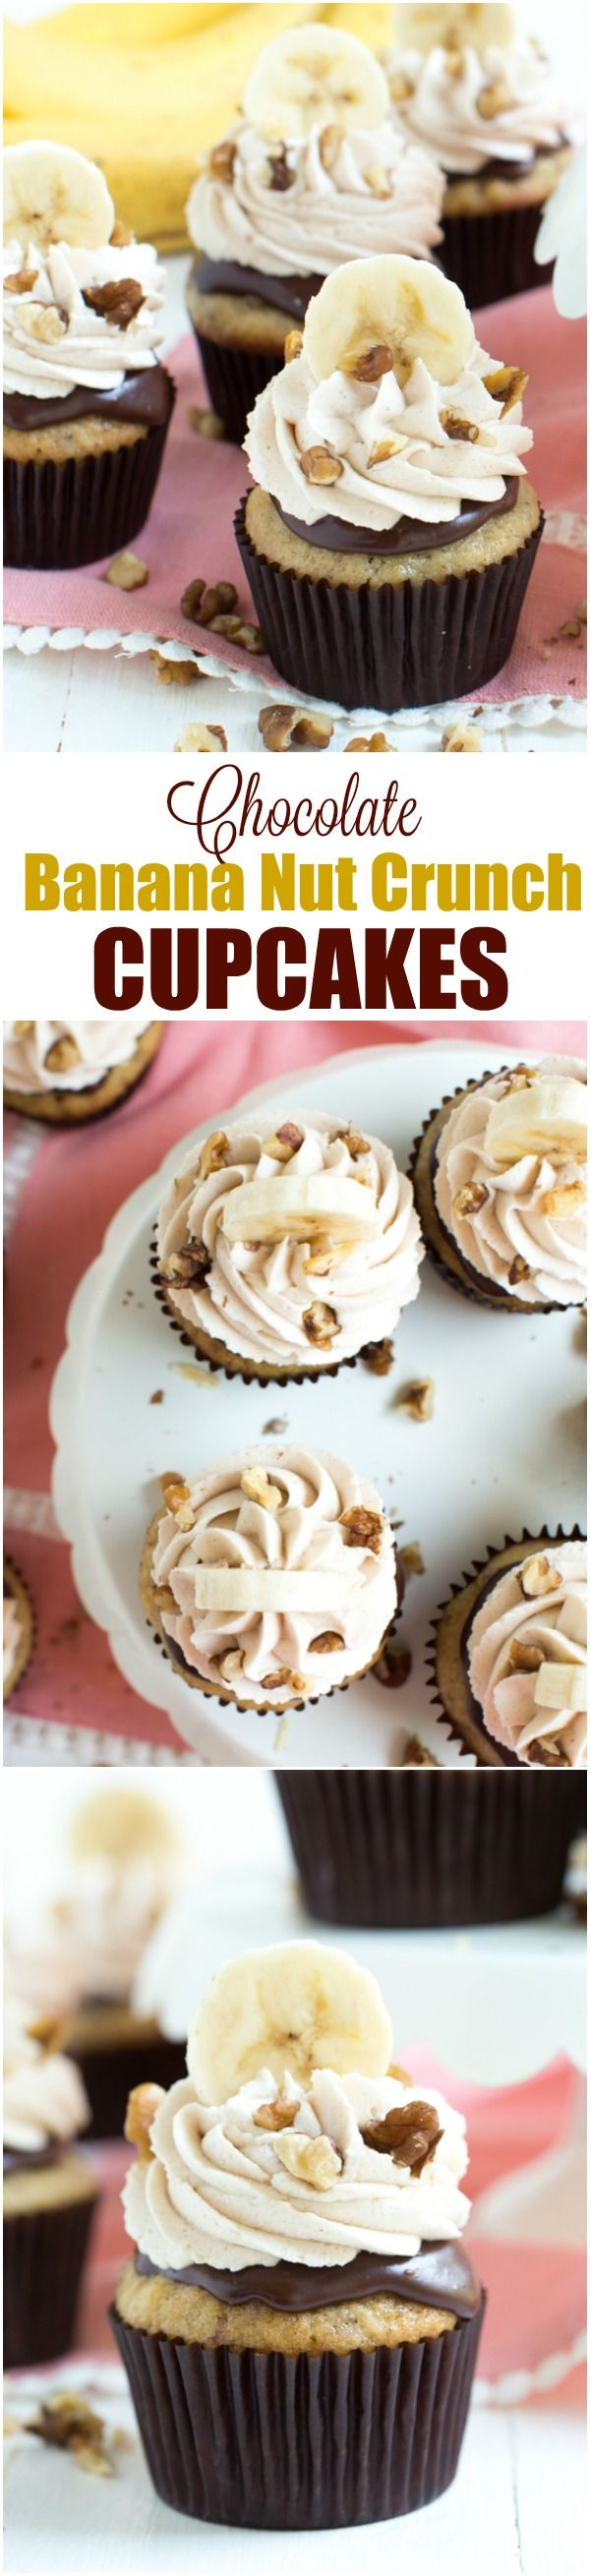 Chocolate Banana Nut Cupcakes are made with a banana nut cake, chocolate ganache and topped with vanilla cinnamon frosting. @easy